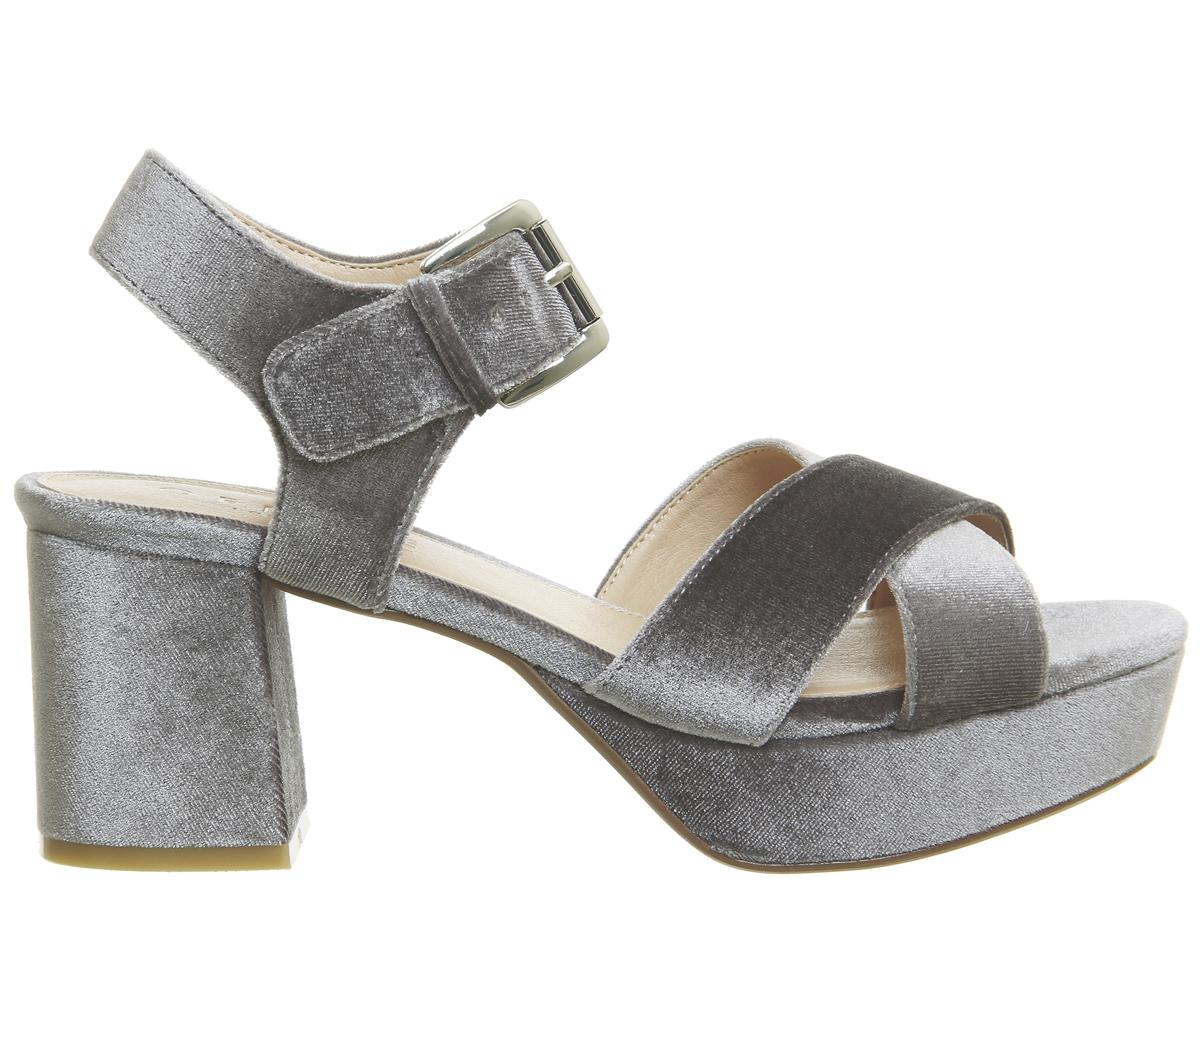 4b420e4fa9e Lyst - Office Montana Platform Block Heels in Gray